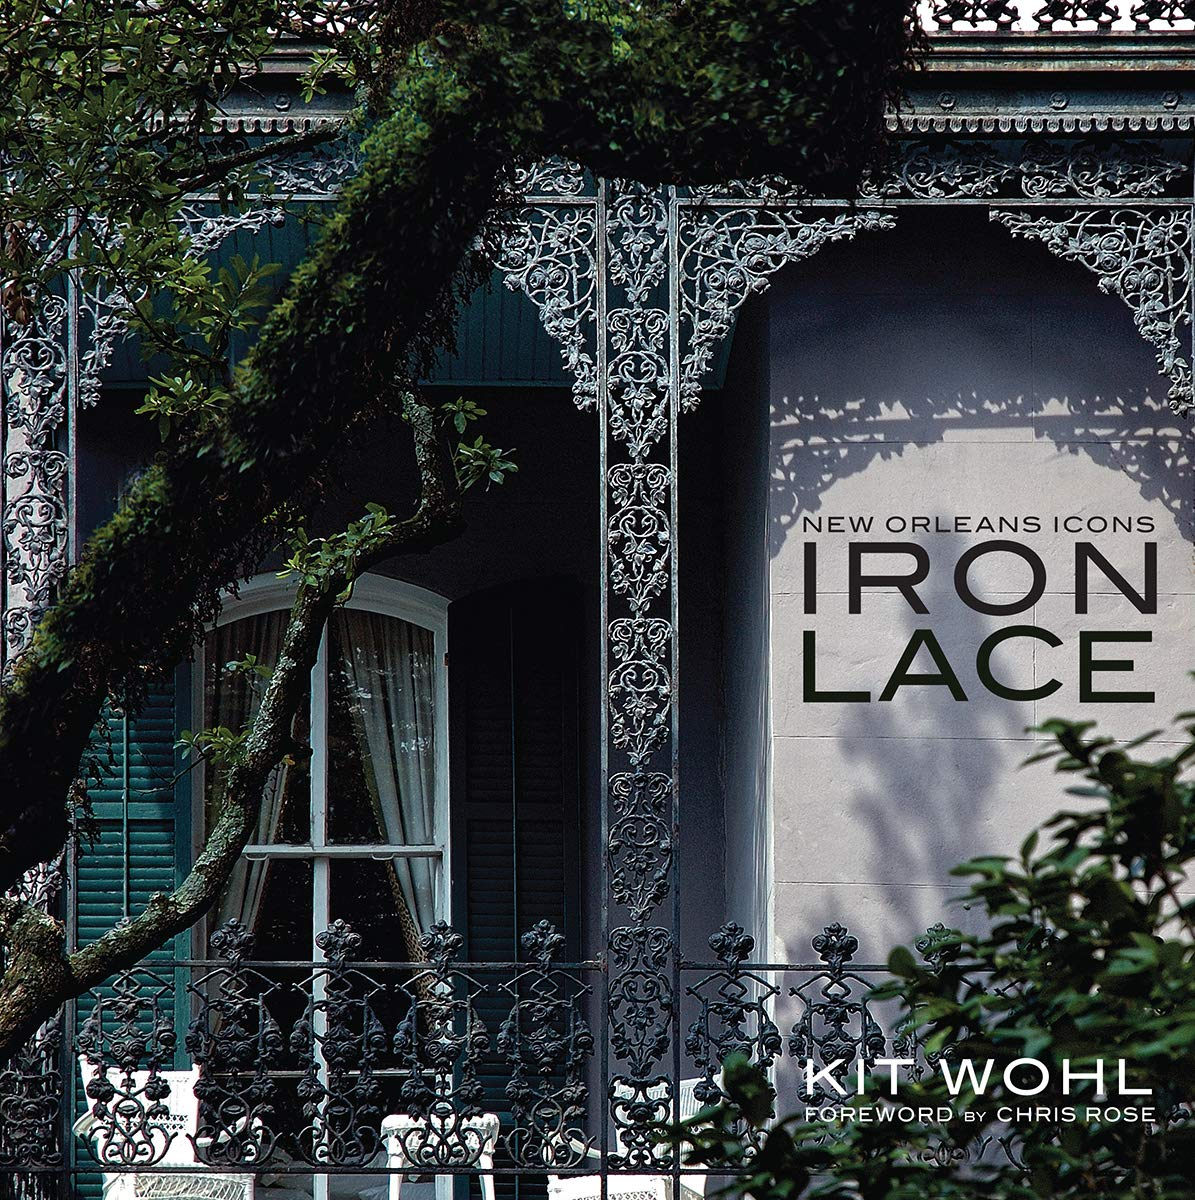 New Orleans Icons: Iron Lace Hardcover – October 15, 2018 Kit Wohl Chris Rose Pelican Publishing 1455618551